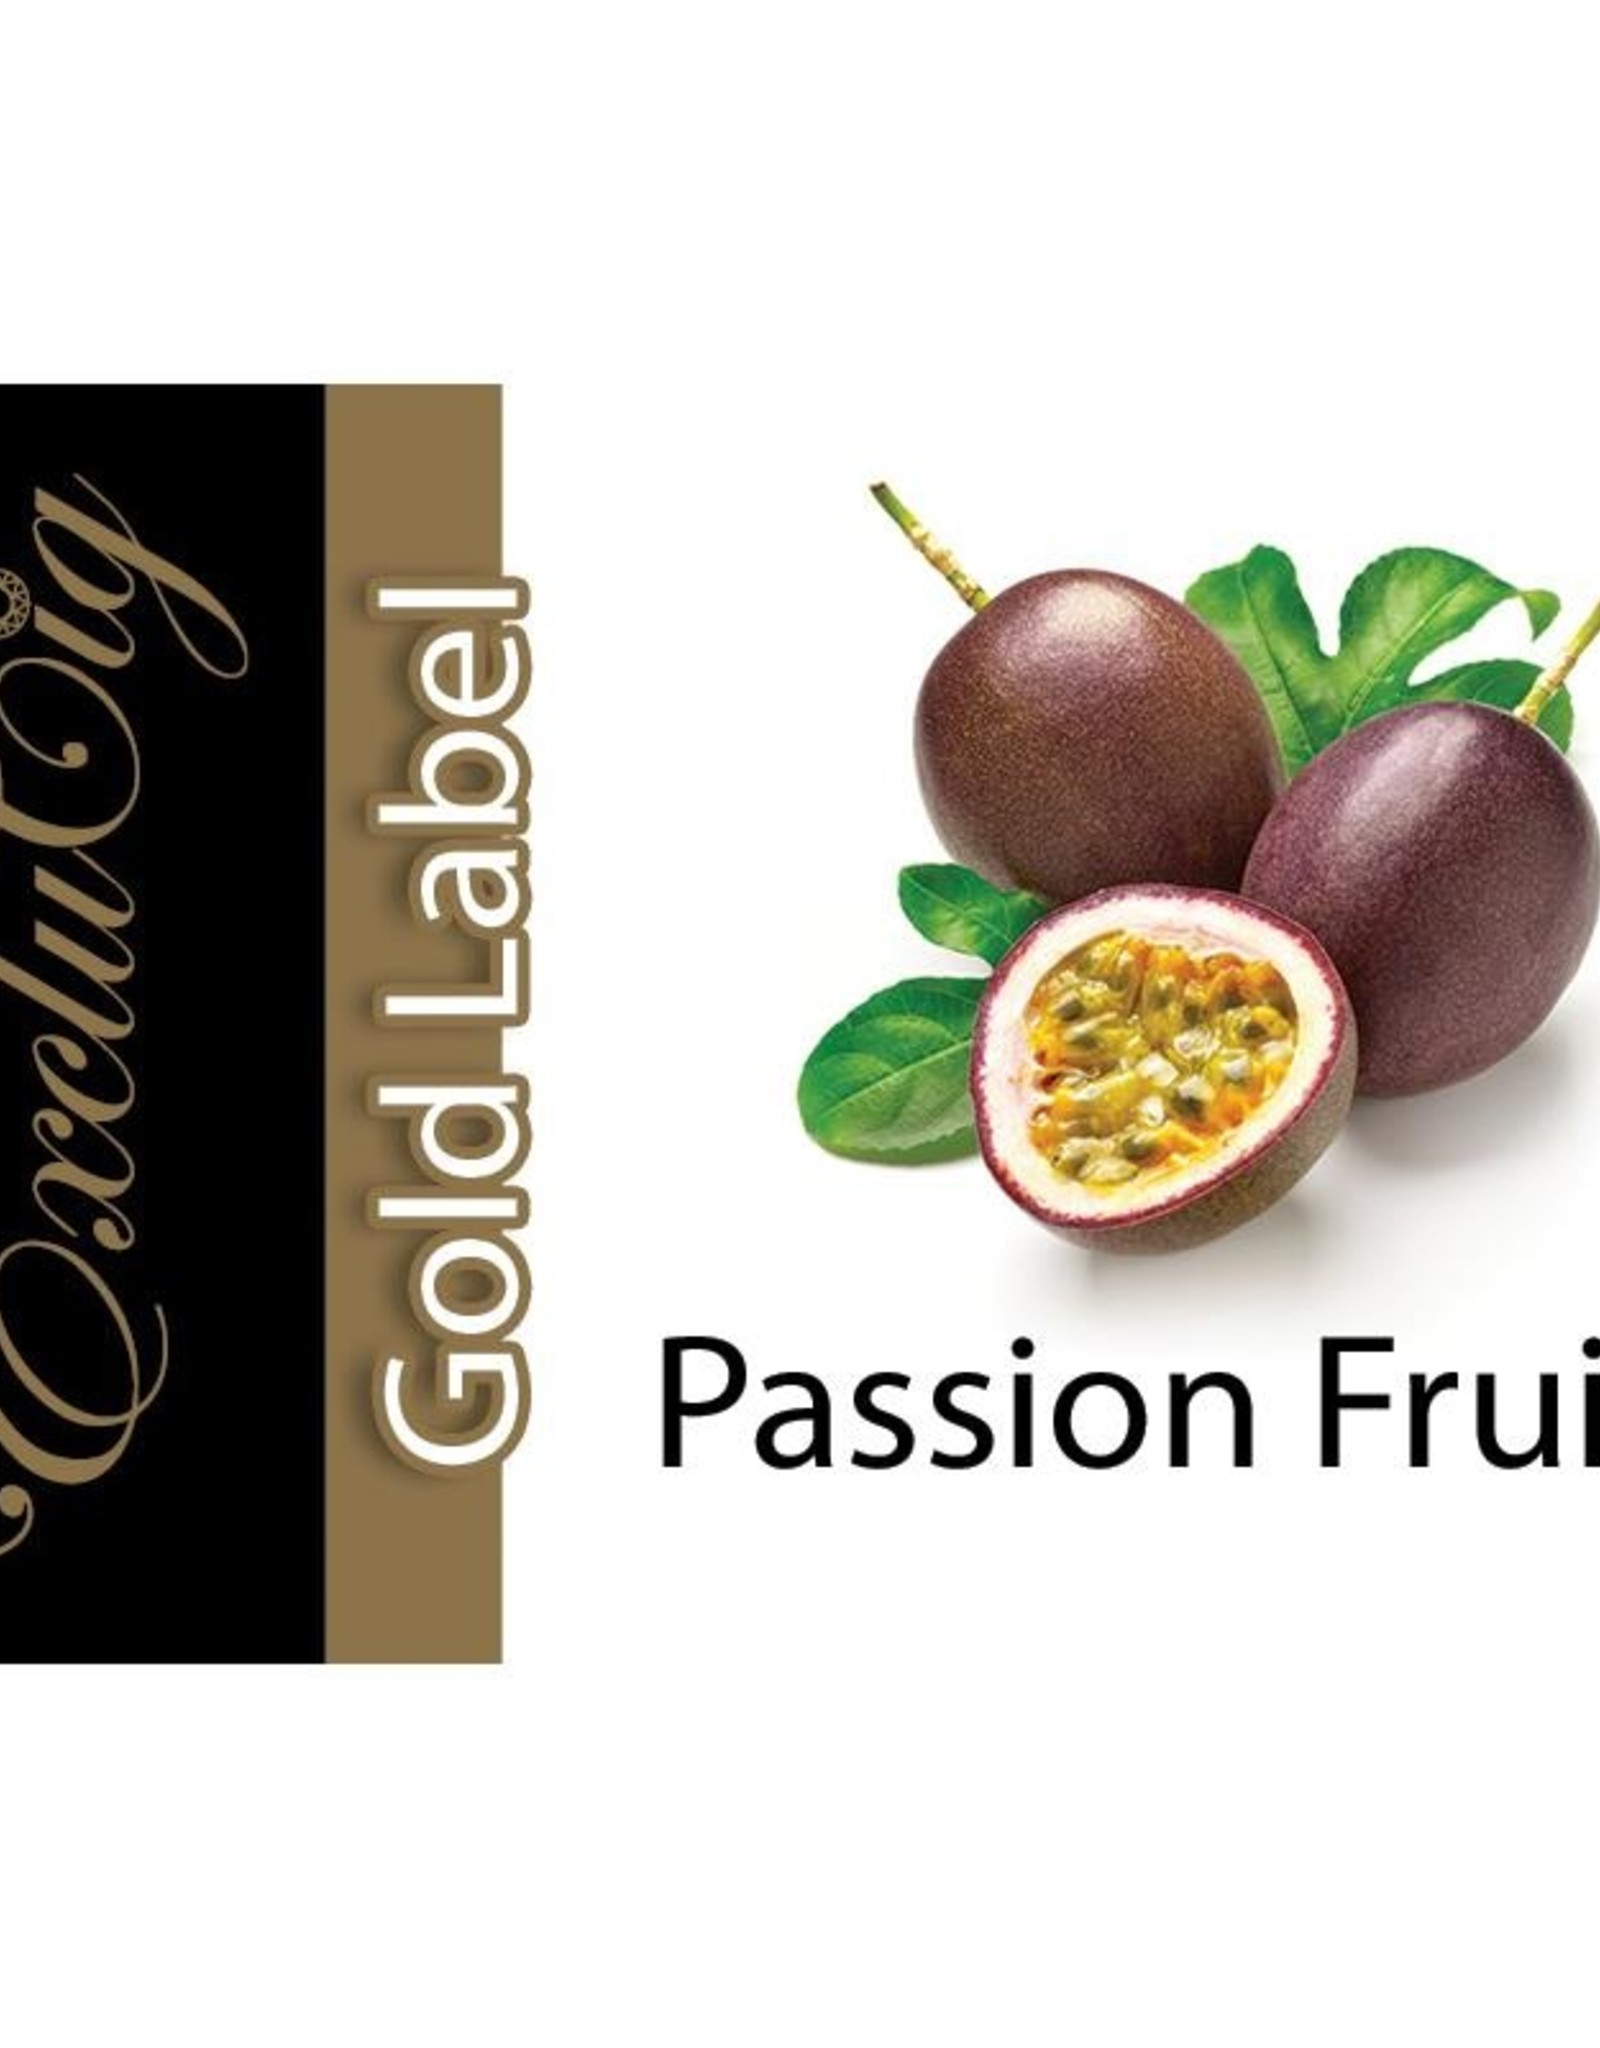 Exclucig Exclucig Gold Label E-liquid Passion Fruit 12 mg Nicotine